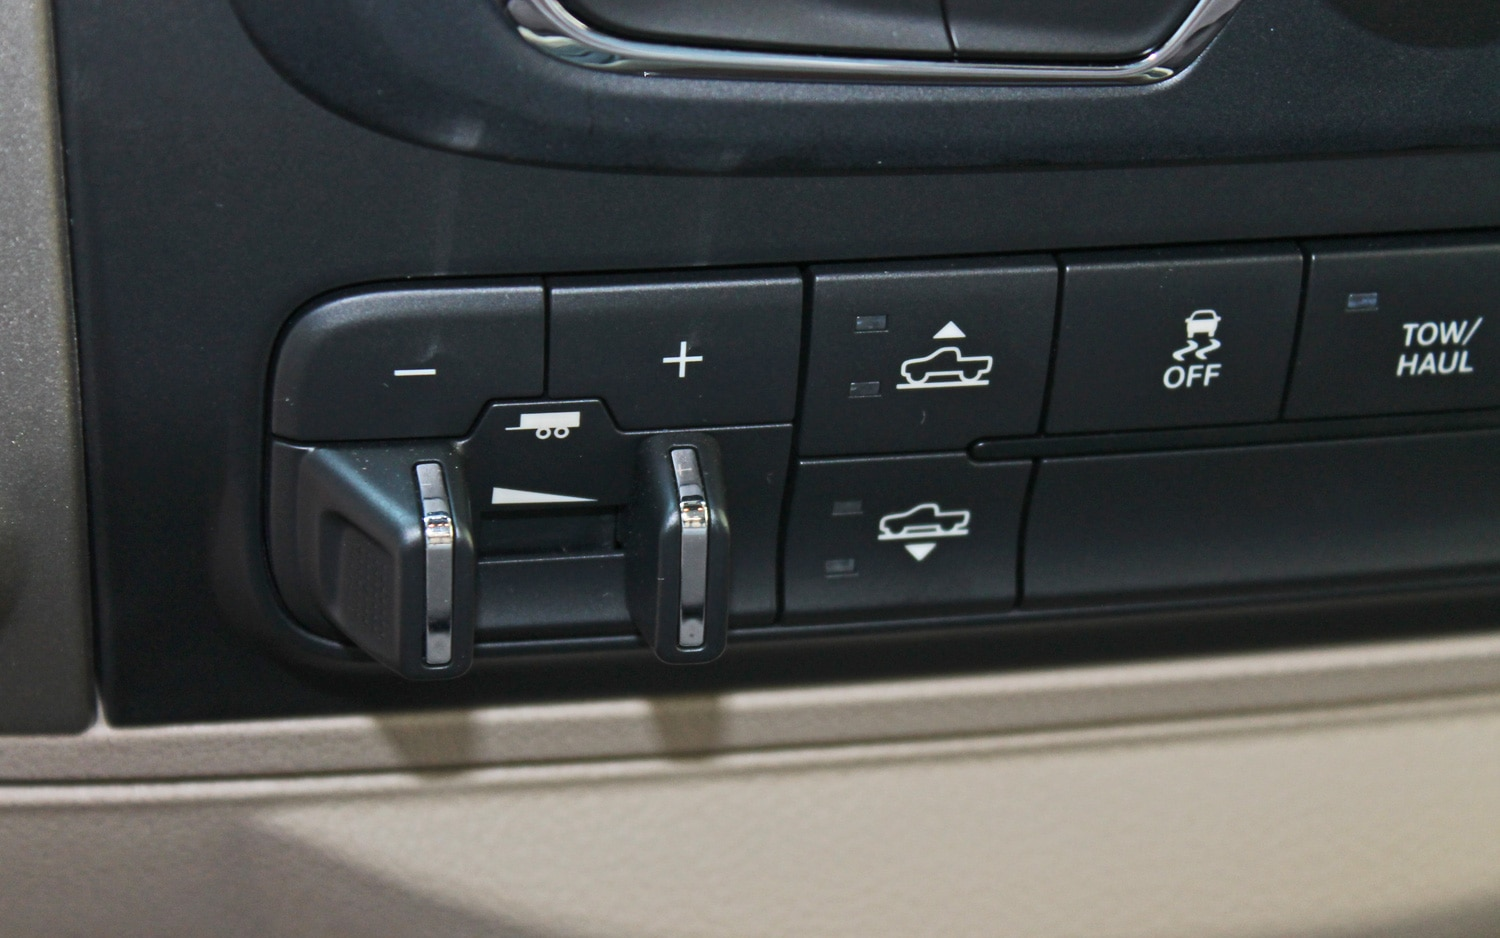 08 Enclave Fuse Box Simple Guide About Wiring Diagram Ingersoll Case 222 2013 Ram 17 Images